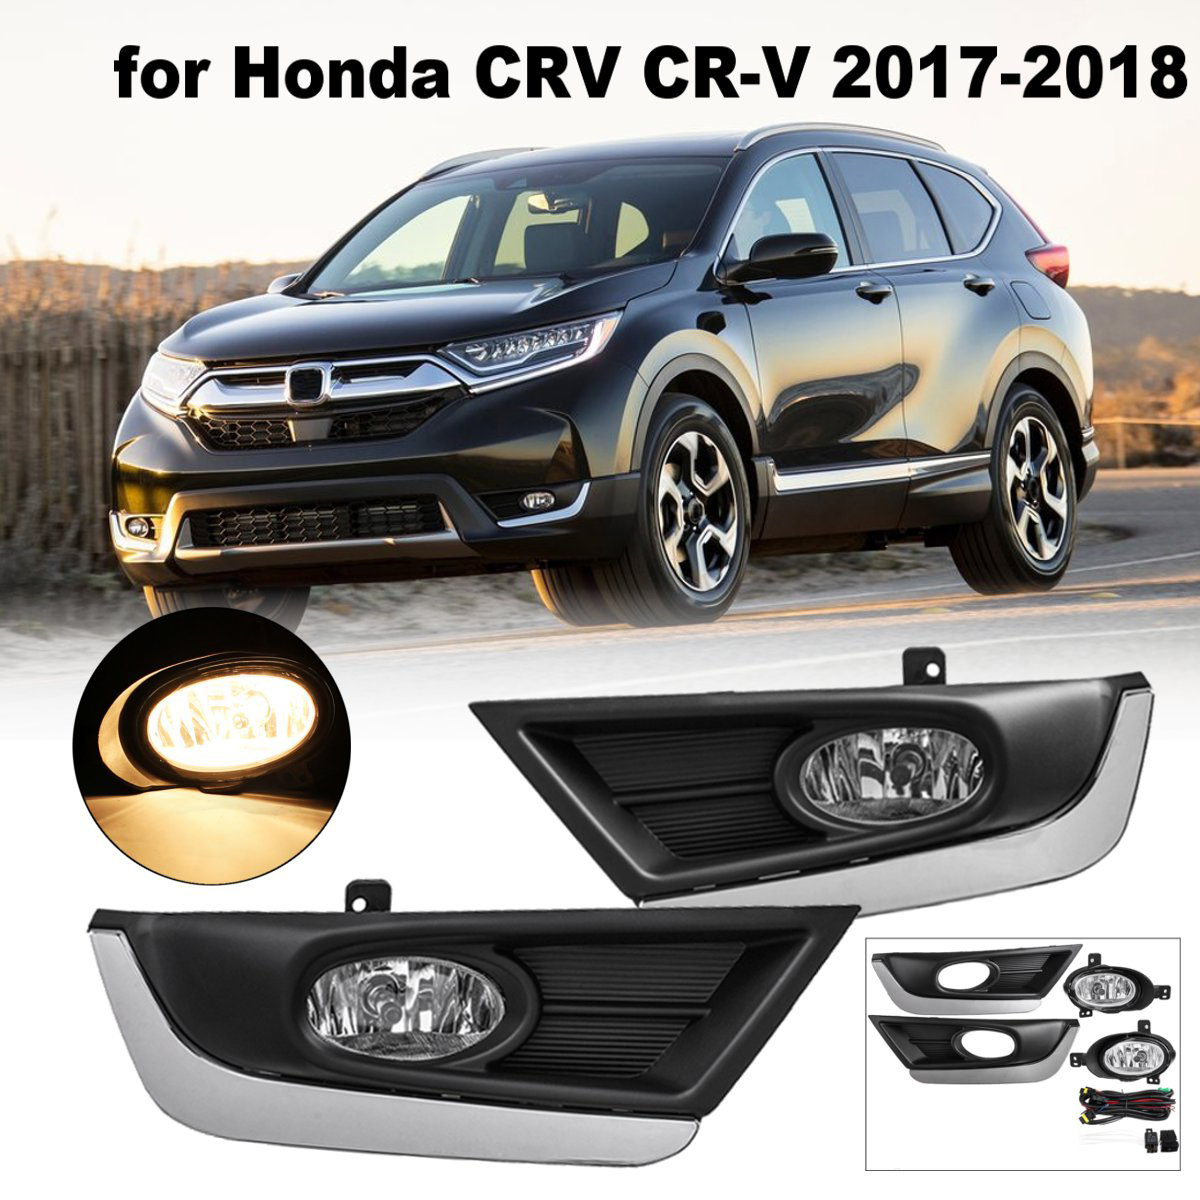 DC 12V 40A H11 Bulbs Pair ABS Bumper Fog Lights For Honda/CRV/CR V 2017 2018 Driving Lamps w/ Wiring Harness Front Left Right